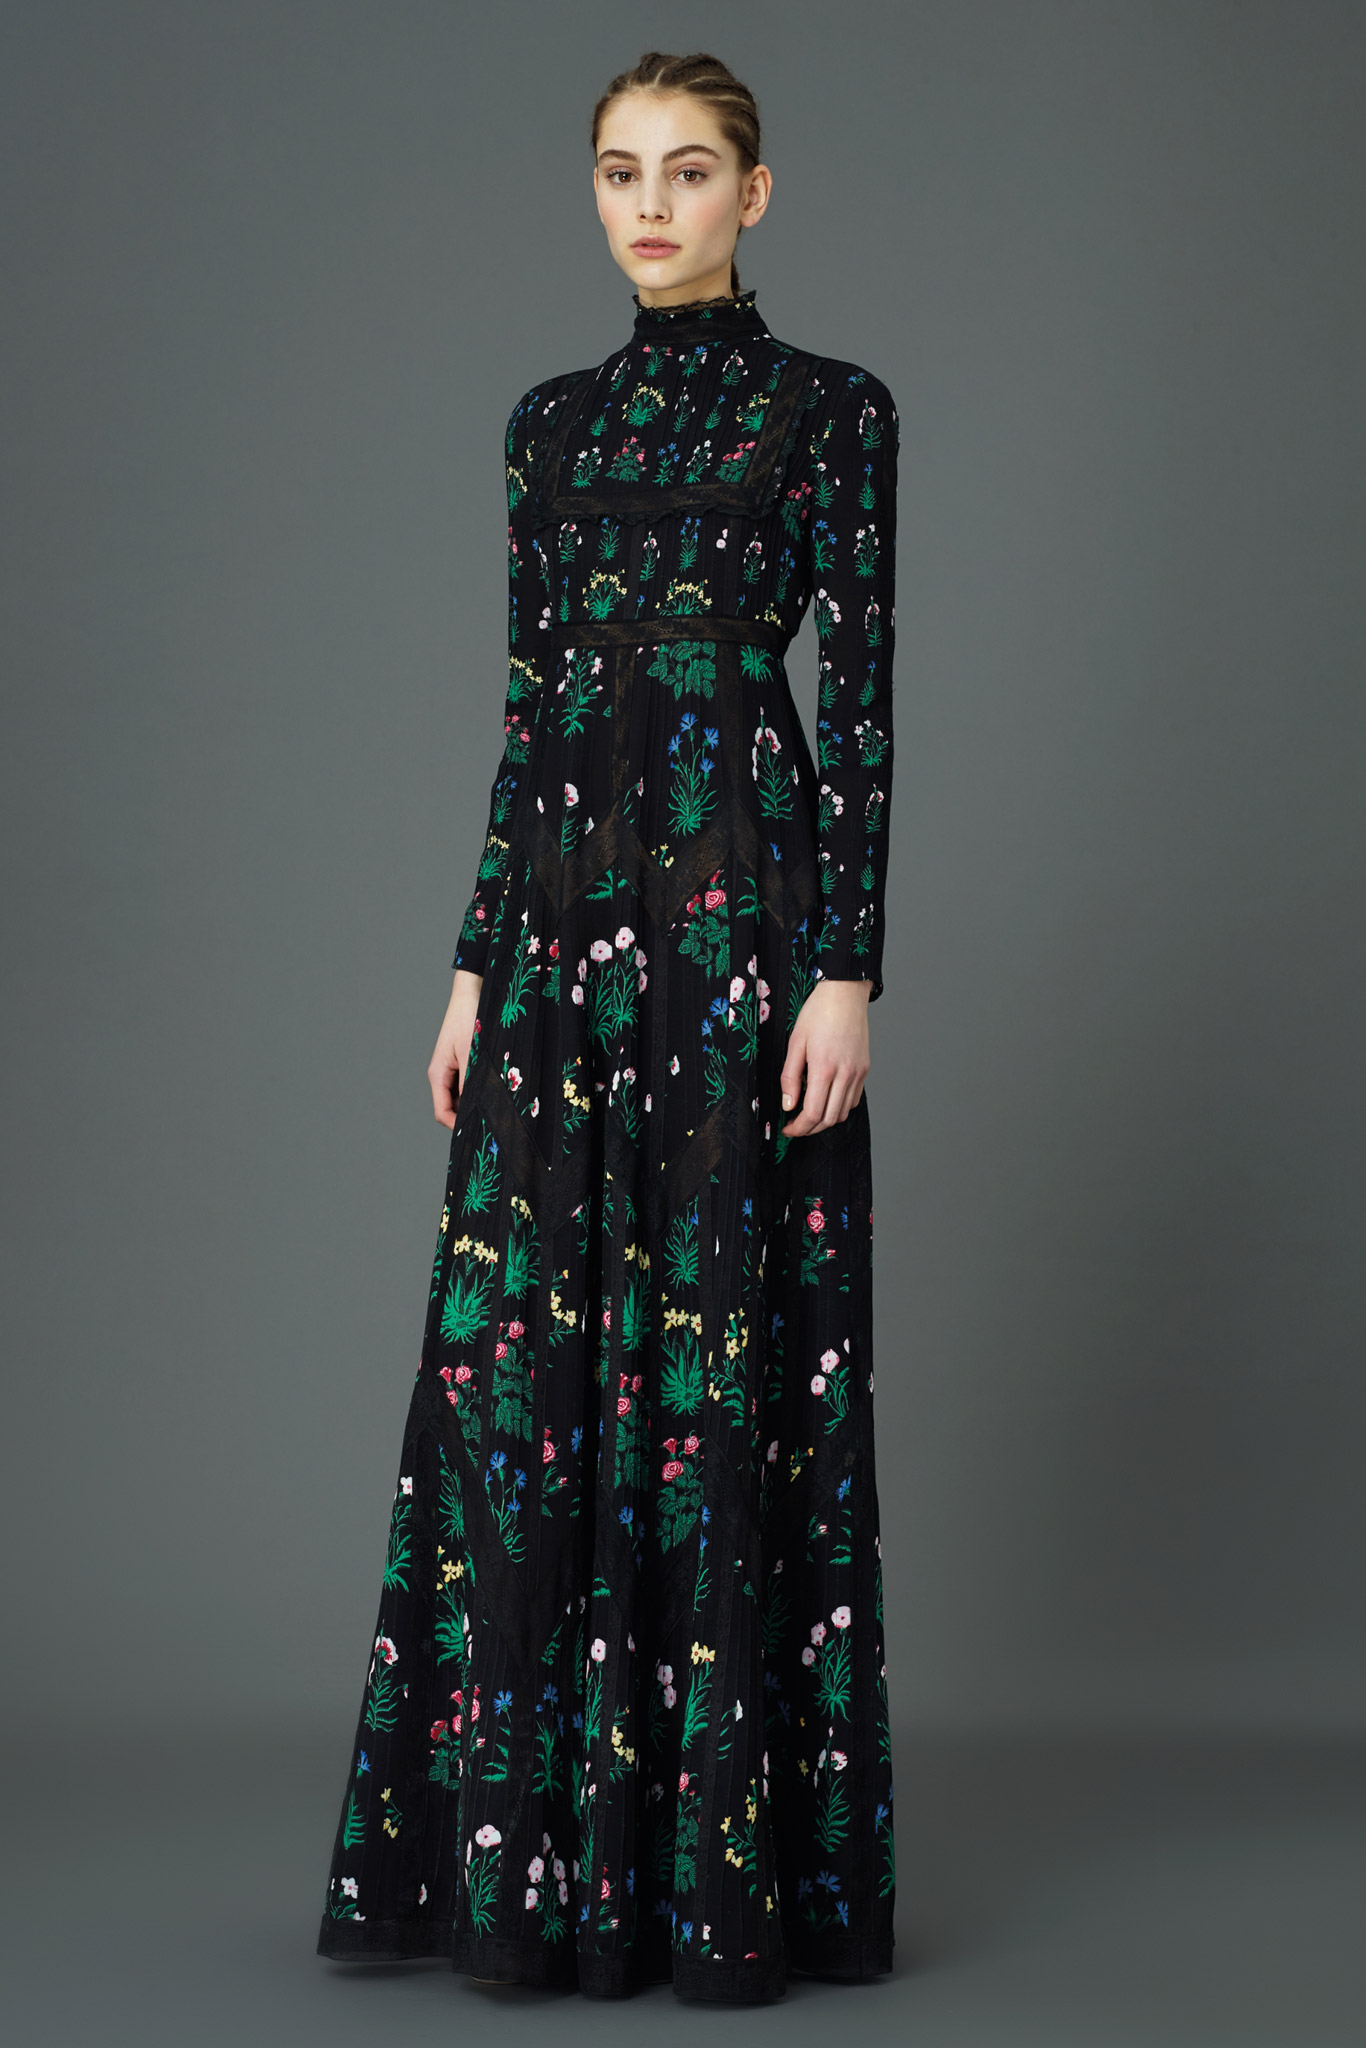 Bilder Des Tages Valentino Pre Fall 2015 We Want To Believe In A Fantastic Future Jane